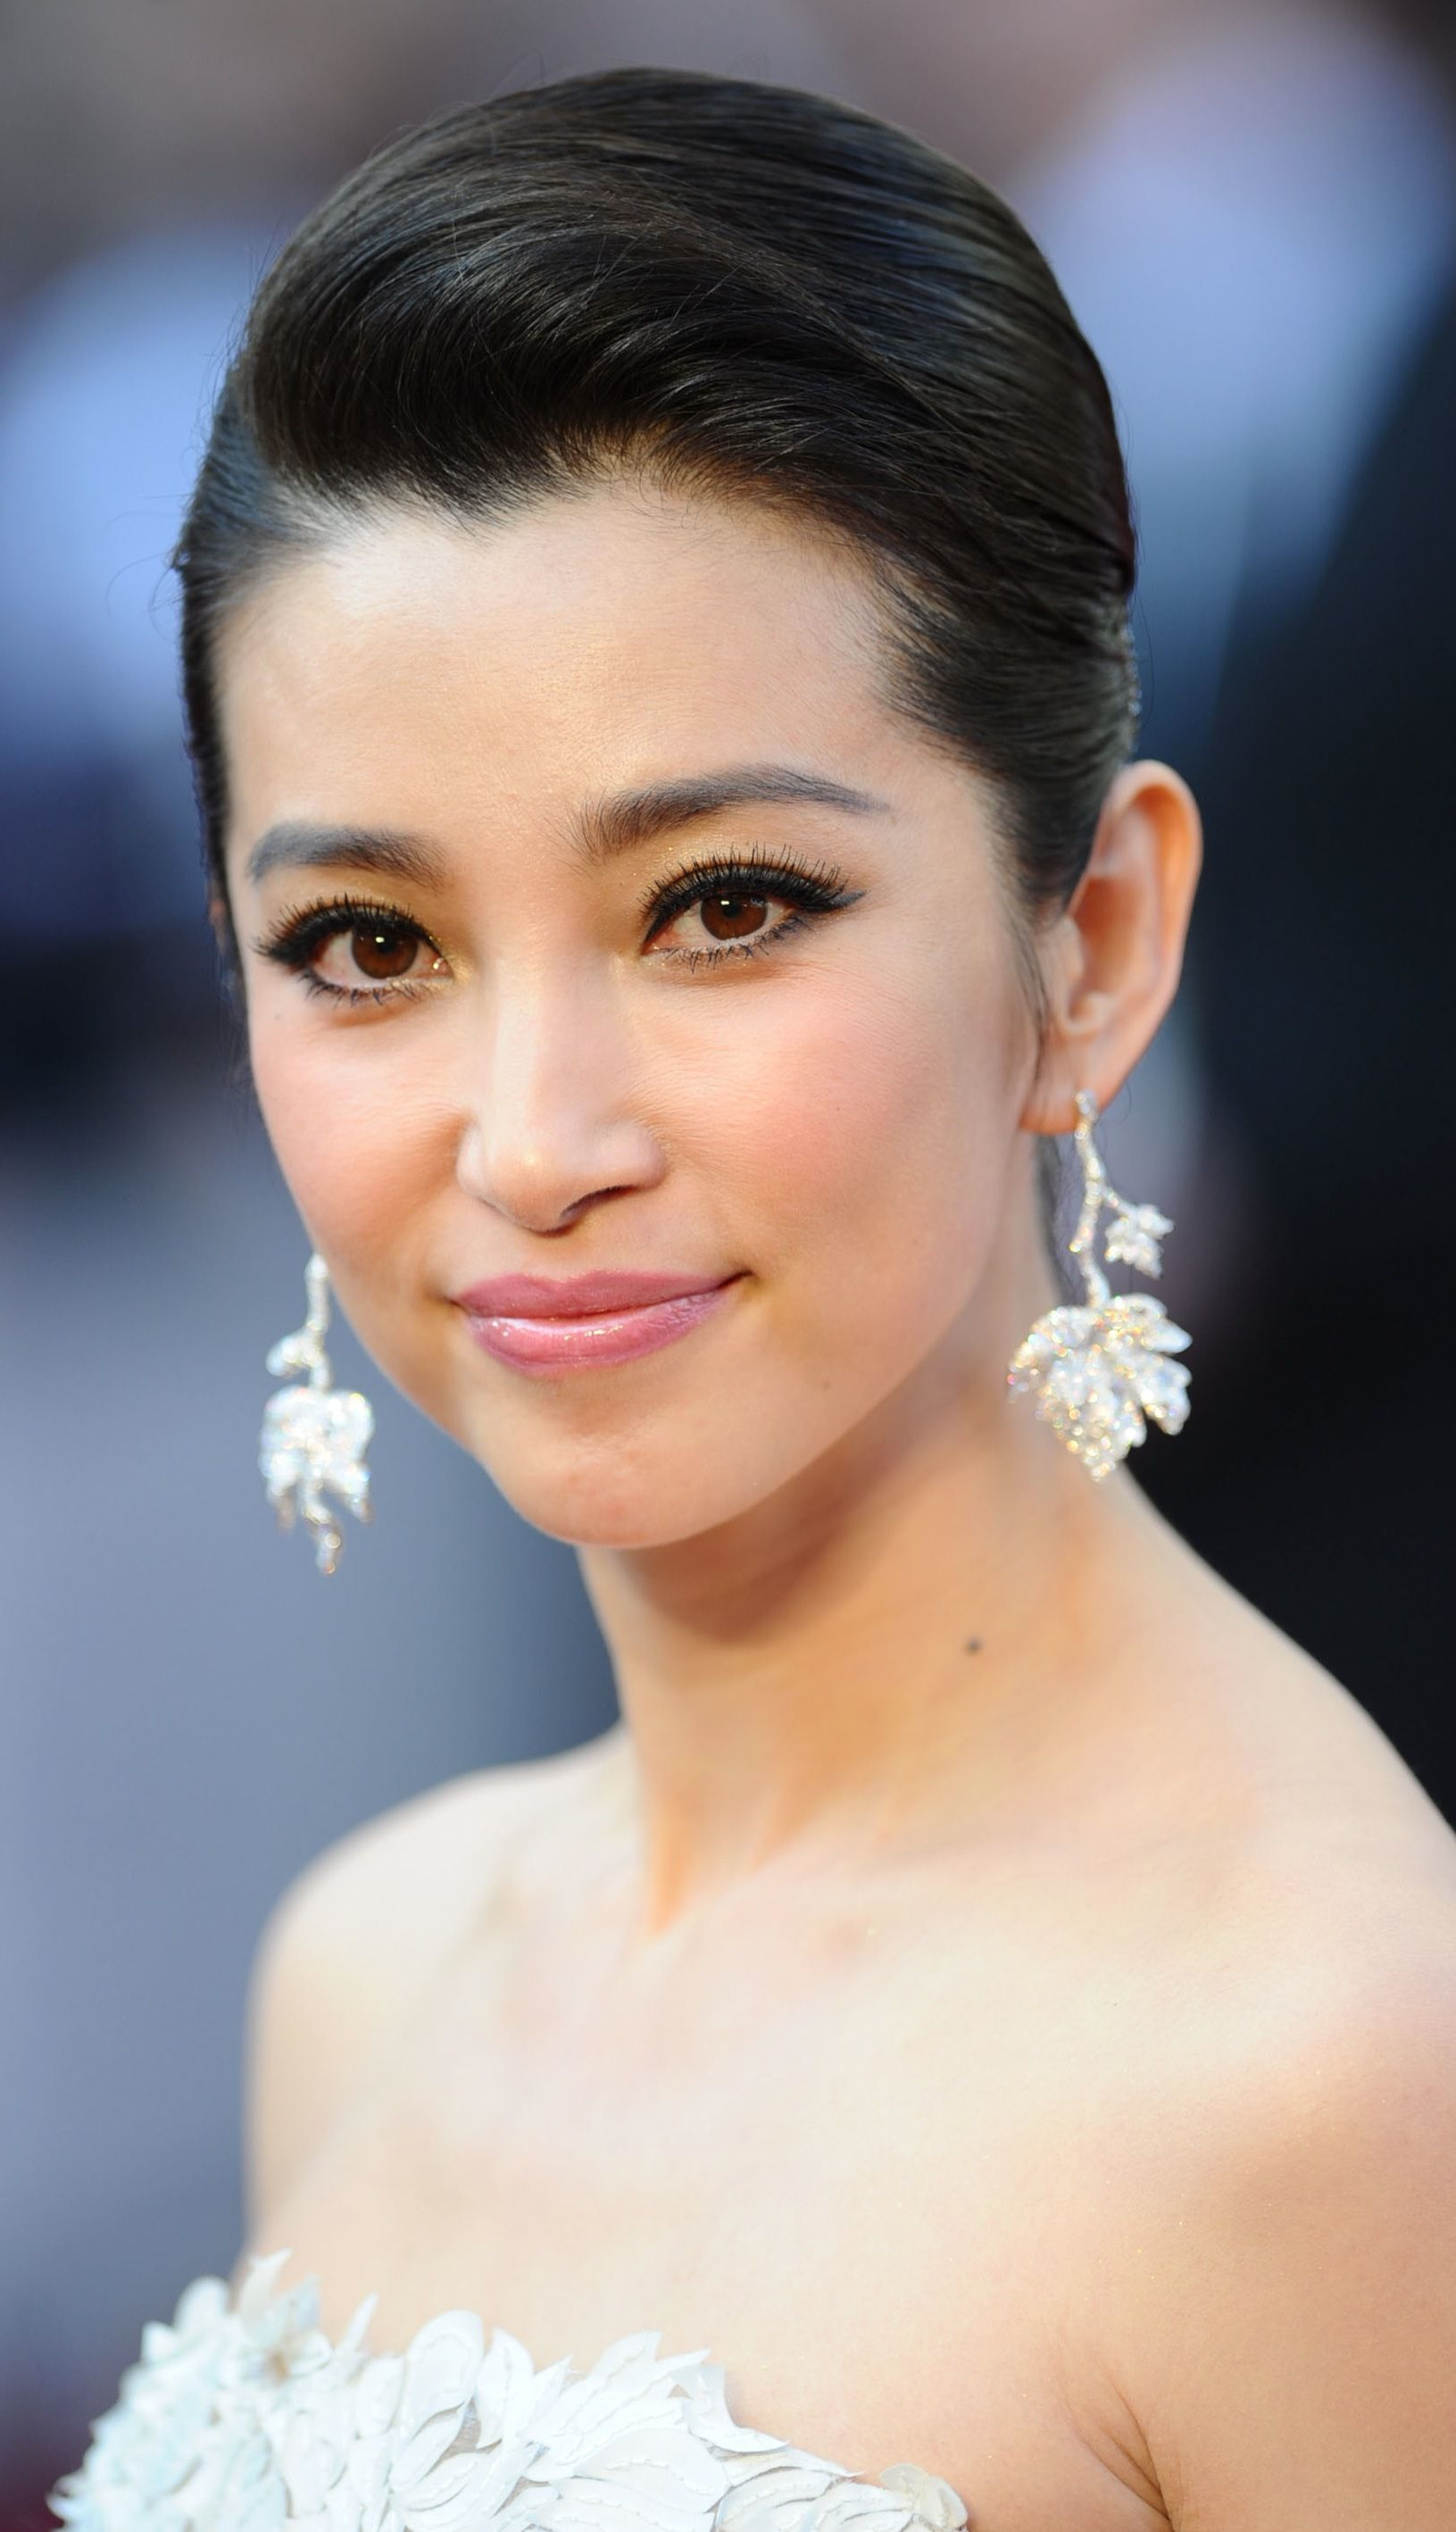 Li bing bing hair and makeup pinterest prom hairstyles and